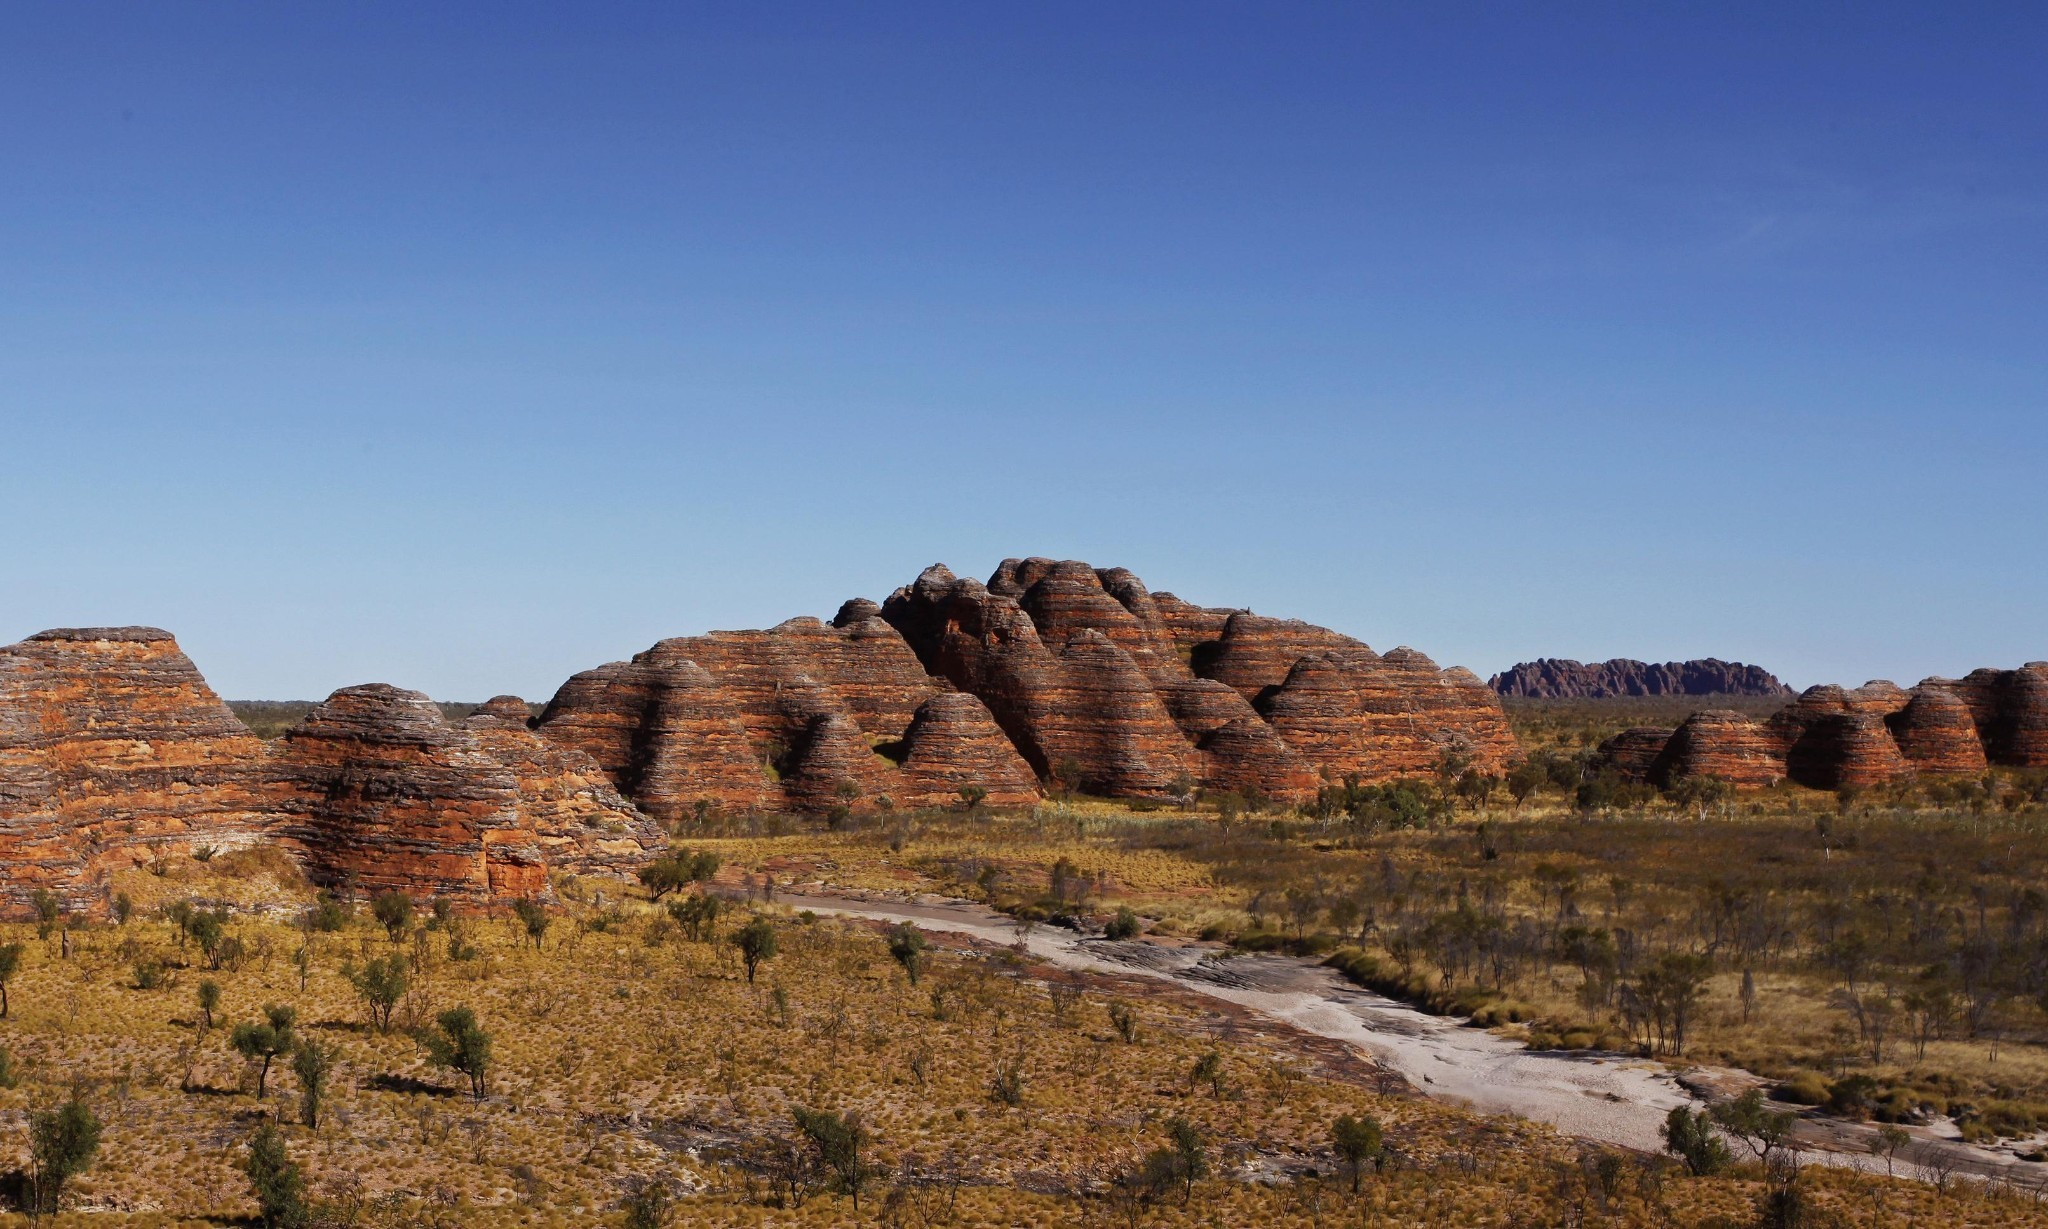 The Kimberley: 'We want people to appreciate how long Aboriginal people have been here'